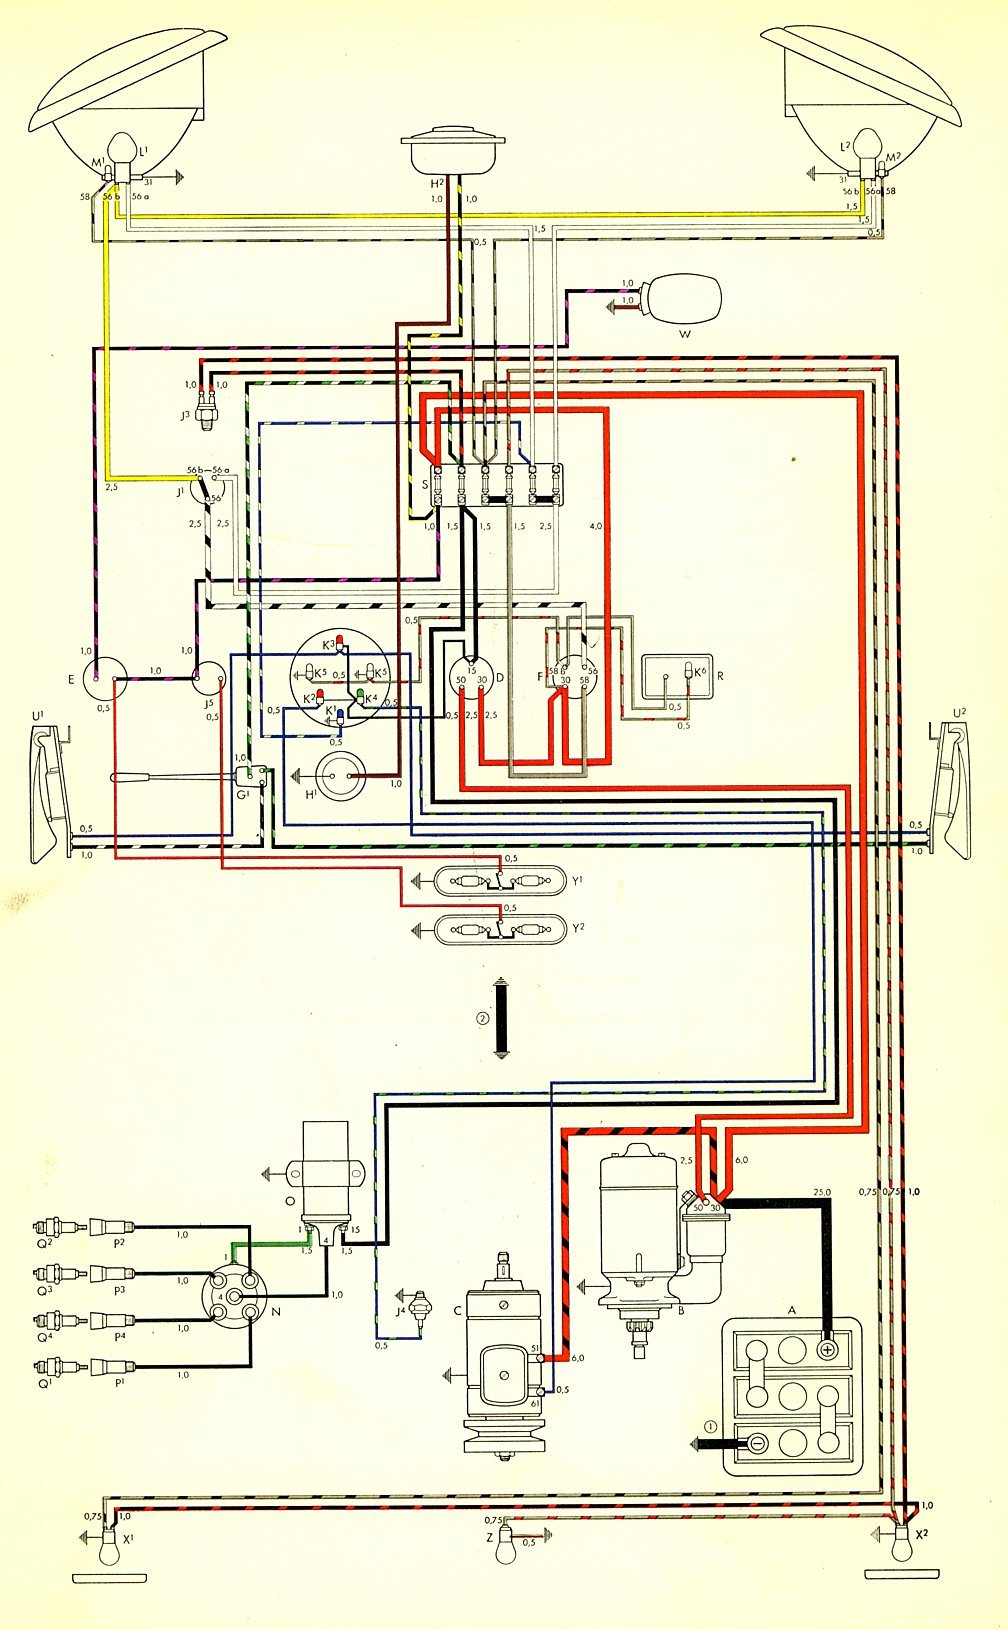 1965 Cj5 Wiring Diagram Free For You Jeep Liberty U2022 Rh Ekowine Store 12 Volt Charging System